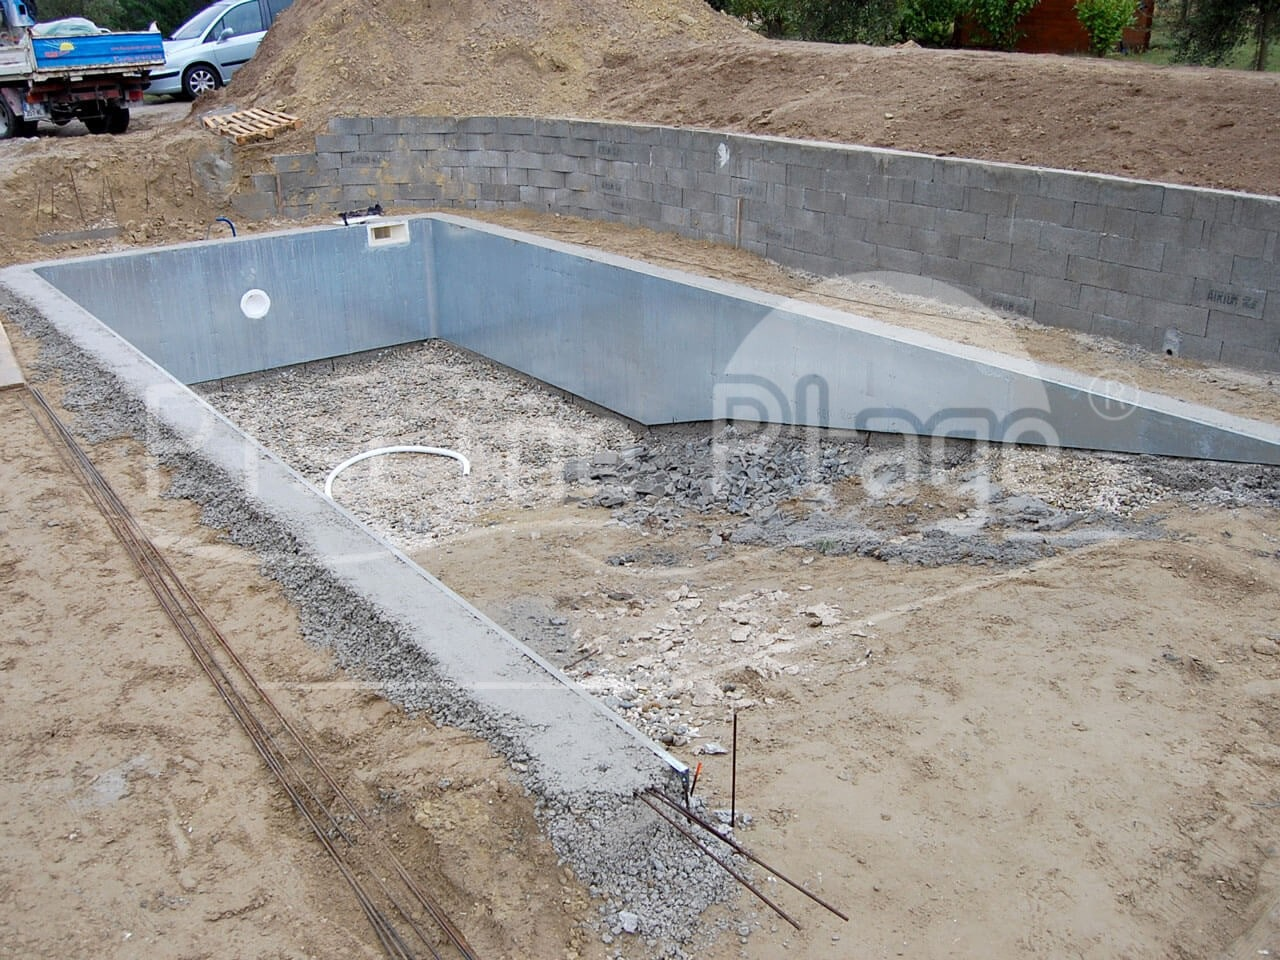 Notre technique de construction piscine plage for Piscine technique